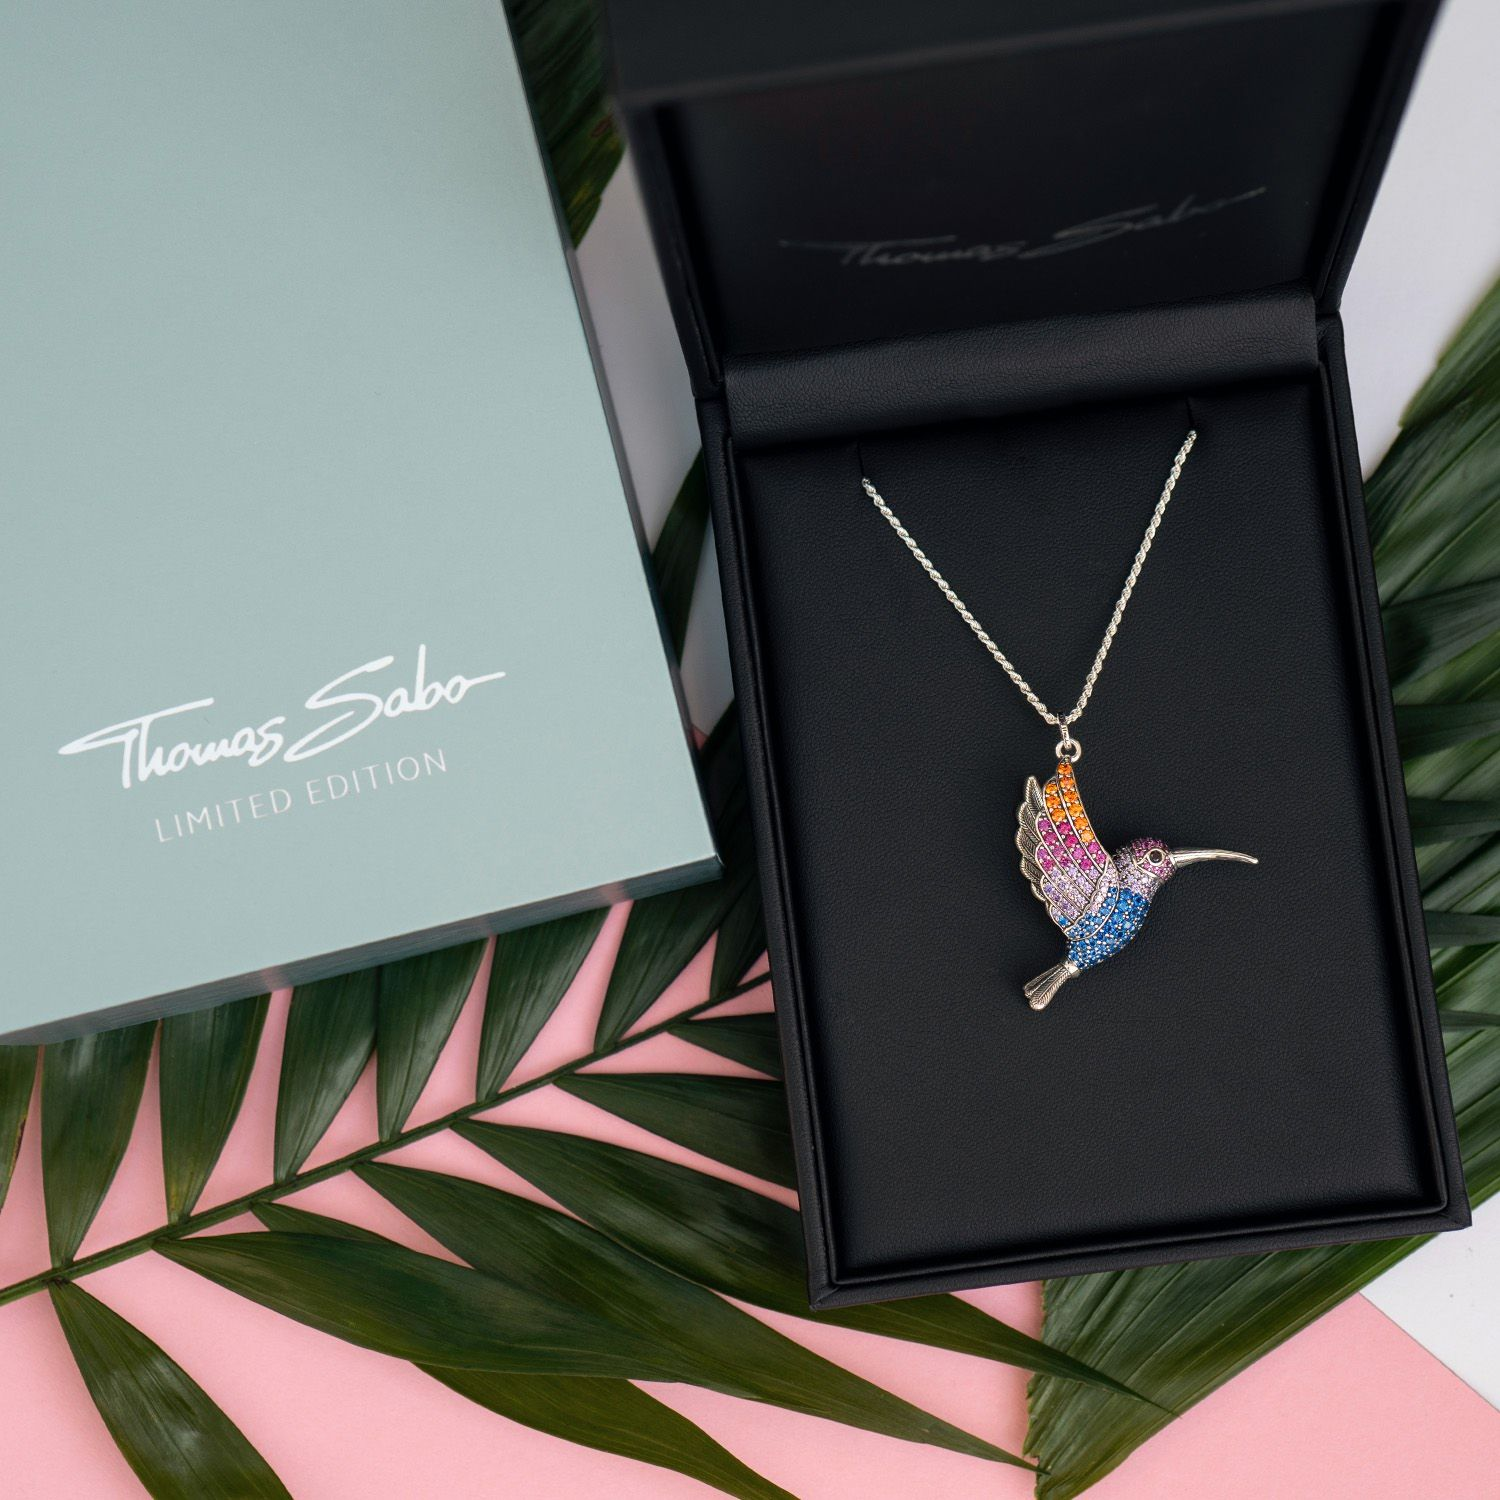 Available Now Limited Edition Thomas Sabo Hummingbird Presented In An Elaborately Hand Crafted Pendant Which Is L Thomas Sabo Jewelry Lover Tropical Jewelry